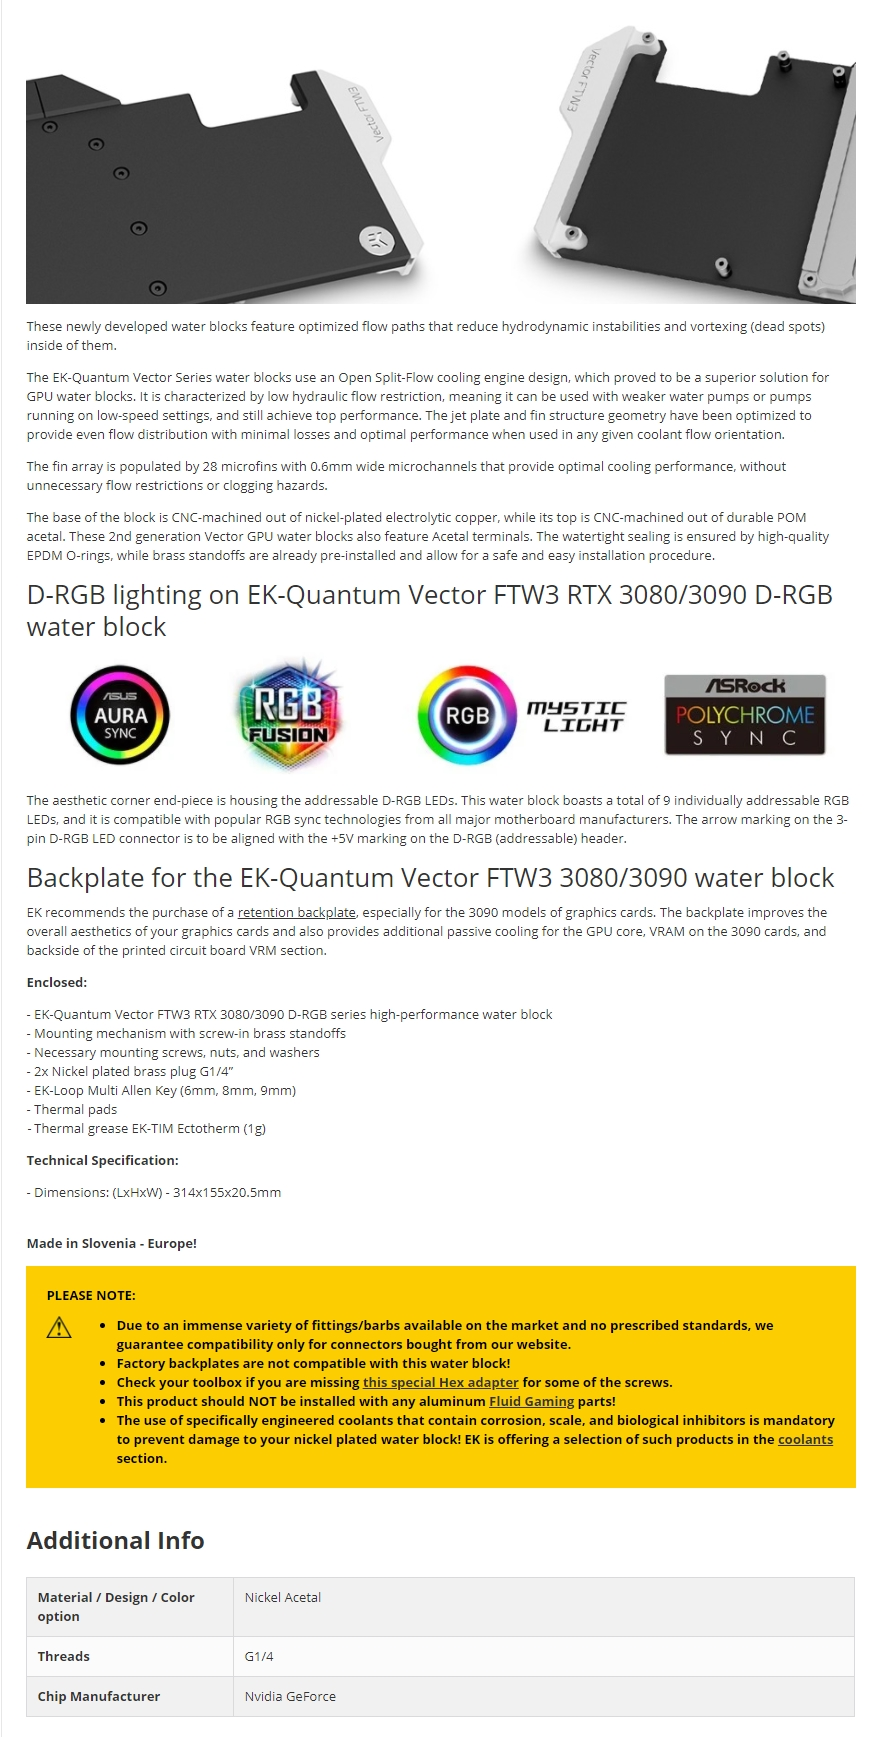 A large marketing image providing additional information about the product EK-Quantum Vector FTW3 RTX 3080/3090 D-RGB - Nickel + Acetal - Additional alt info not provided